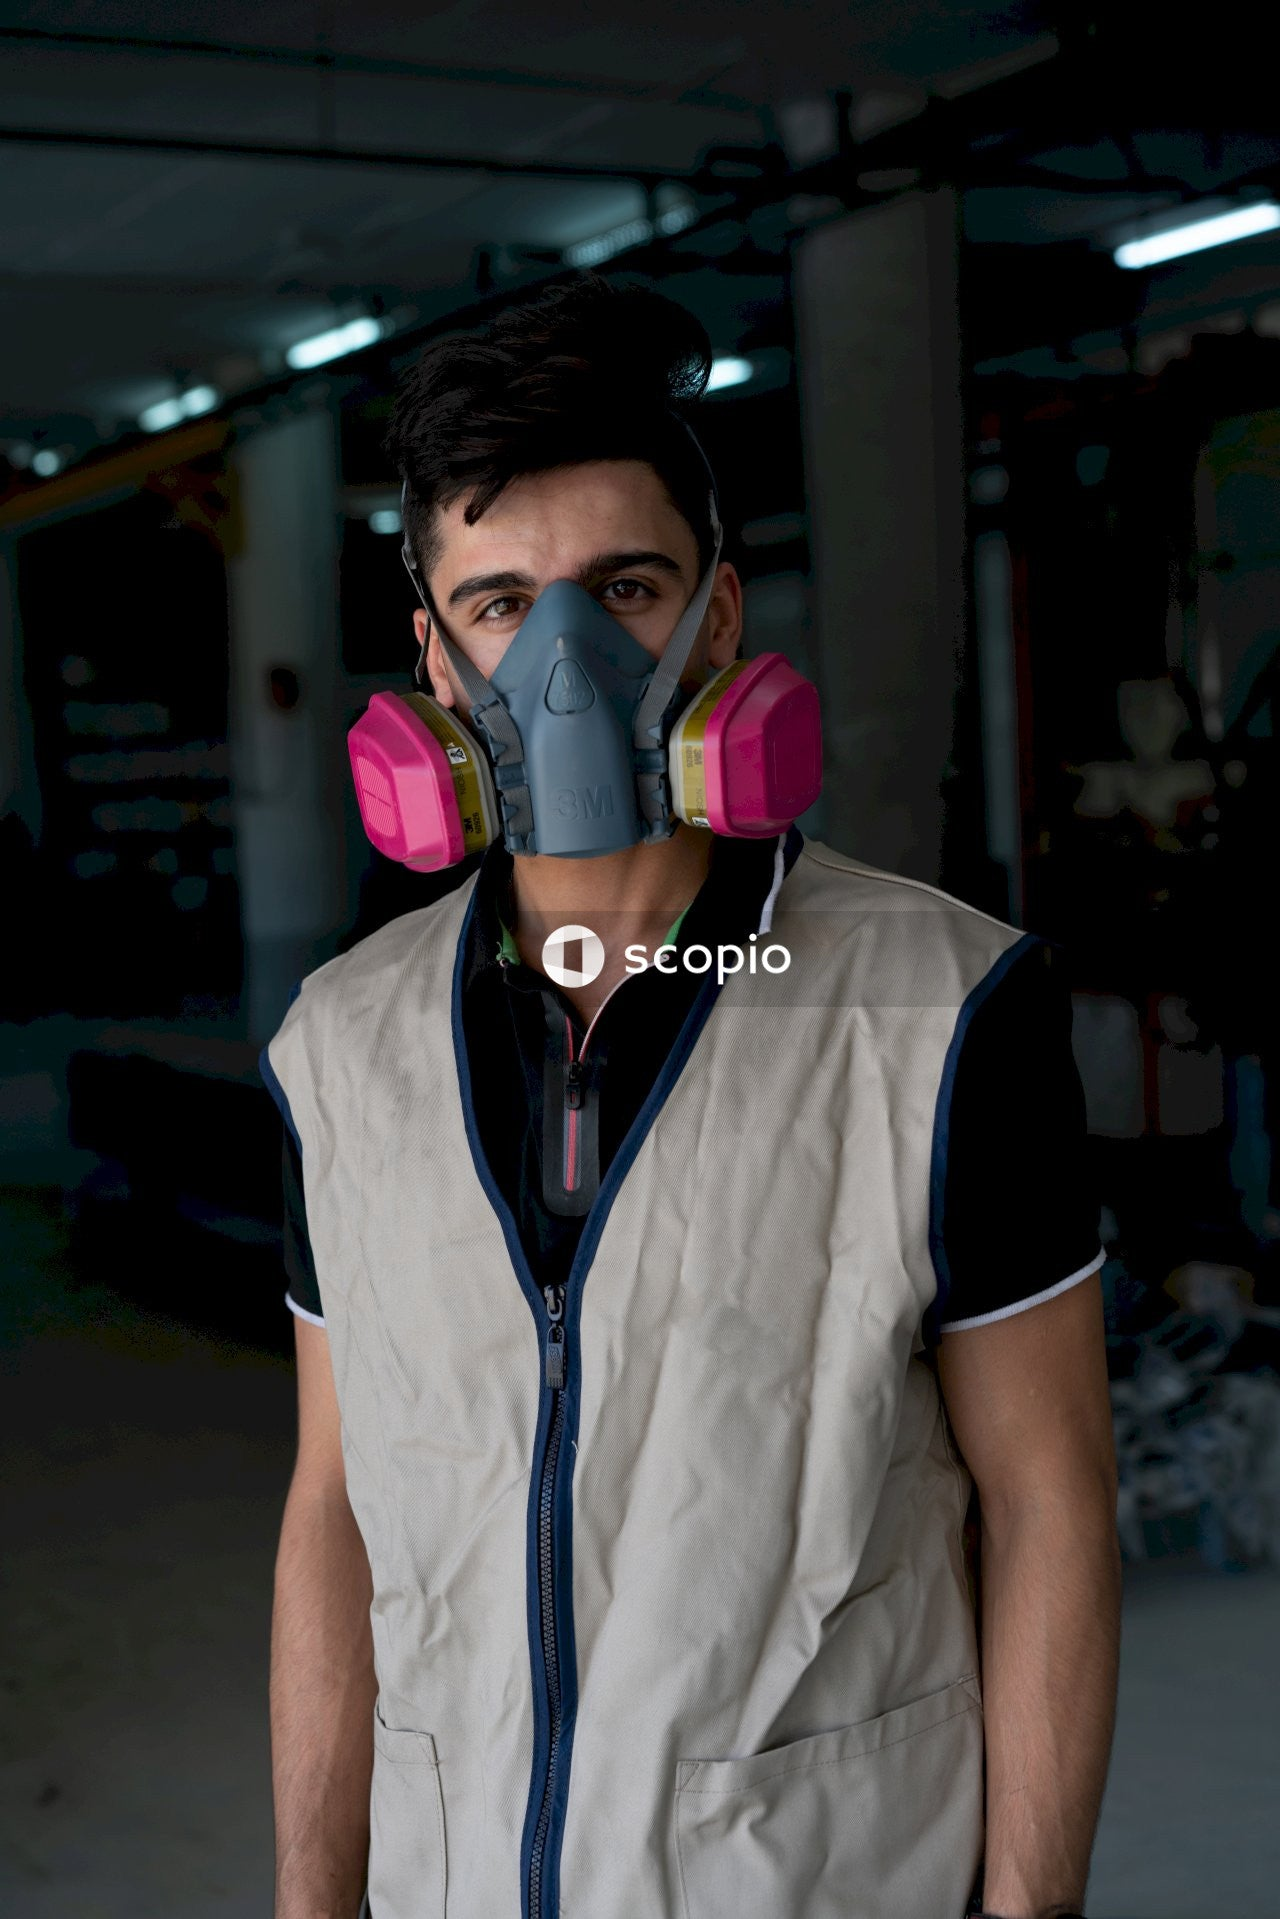 Portrait of a worker in a gas mask